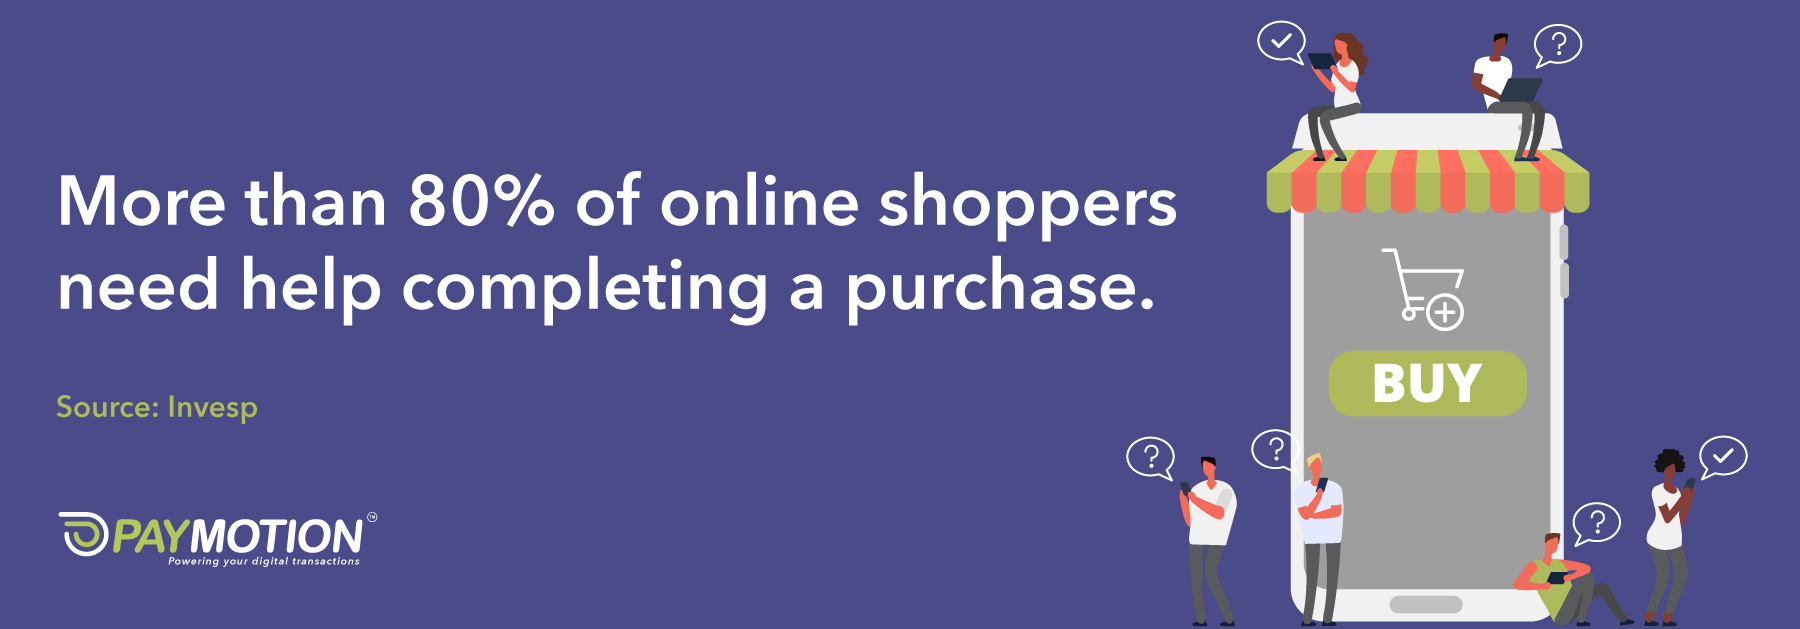 More than 80% of online shoppers need help completing a purchase.